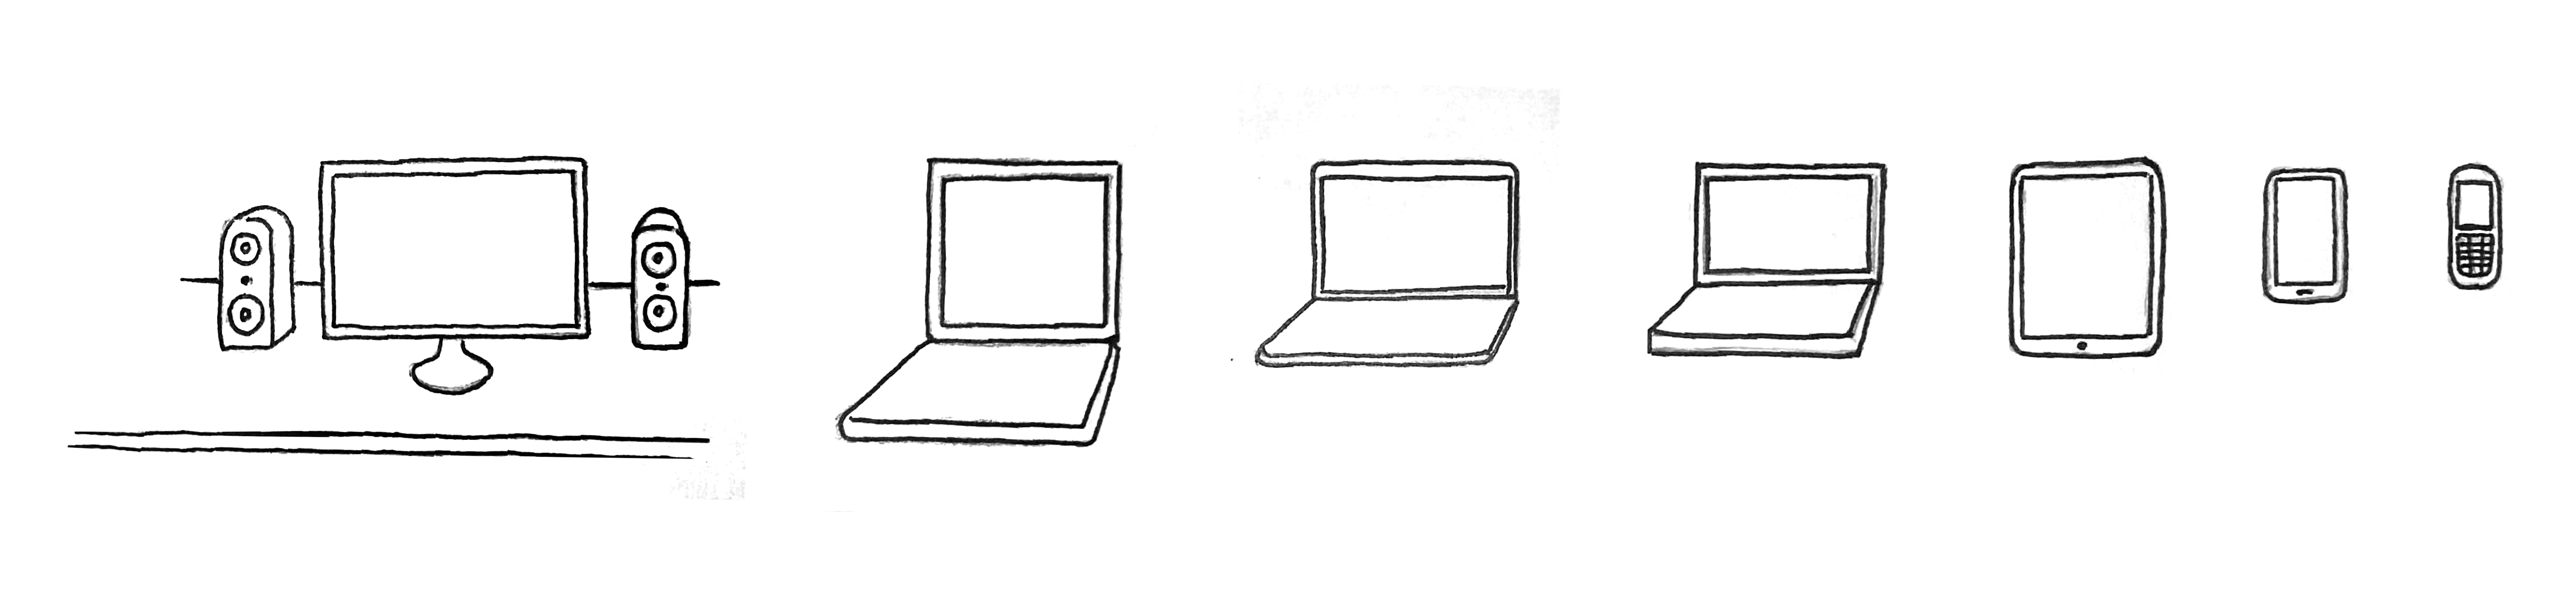 Illustration: A desktop computer, three different laptops, a tablet, a smartphone and a cellphone.